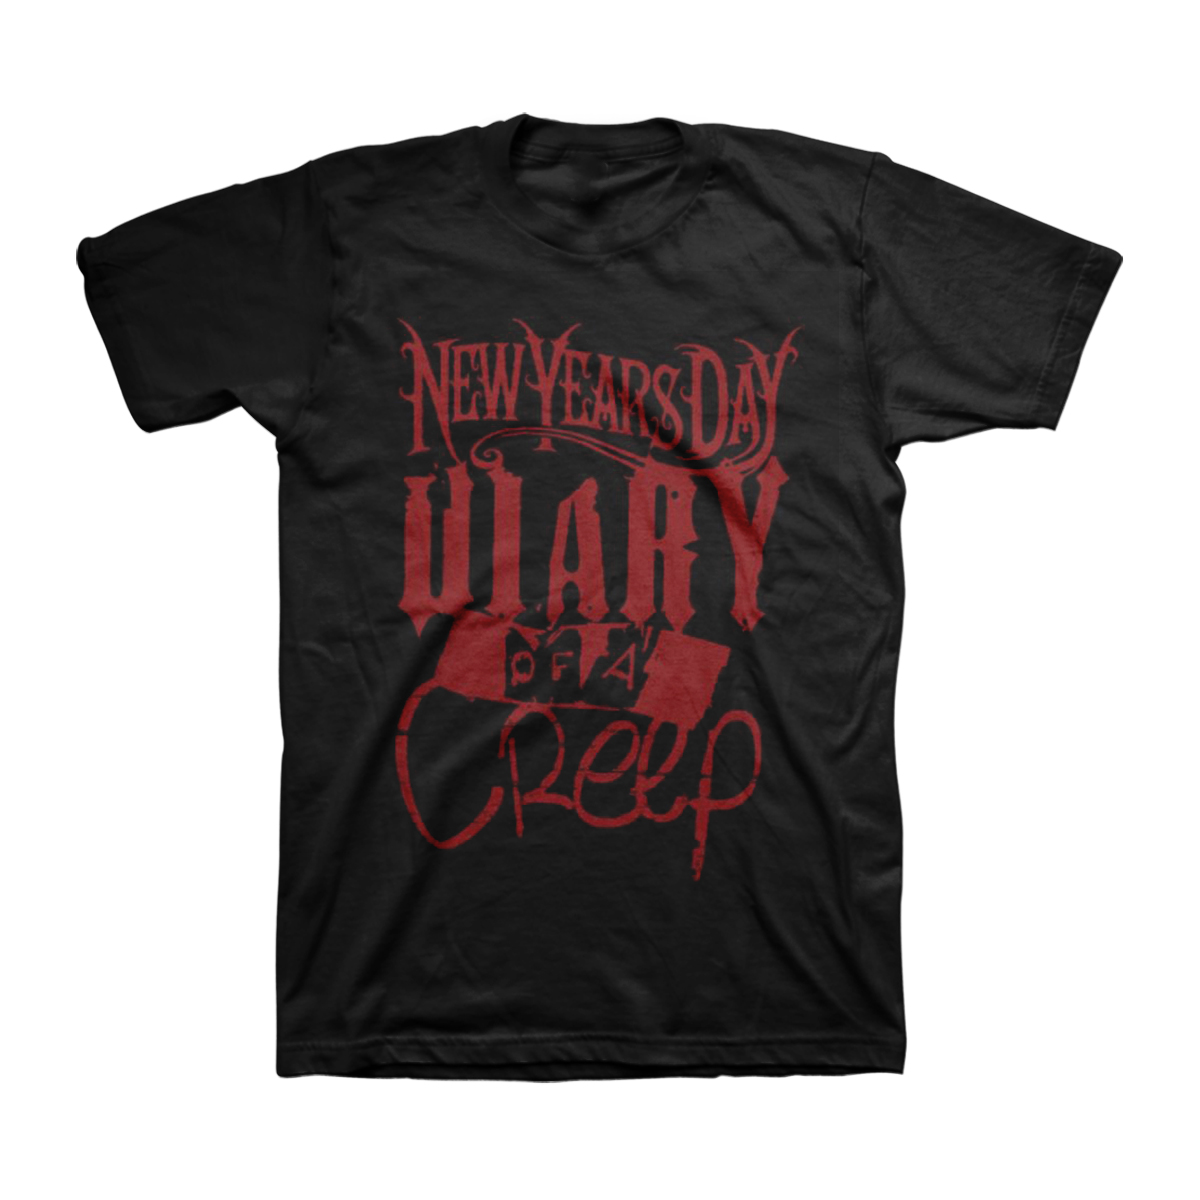 New Years Day - Diary of a Creep Black T-Shirt